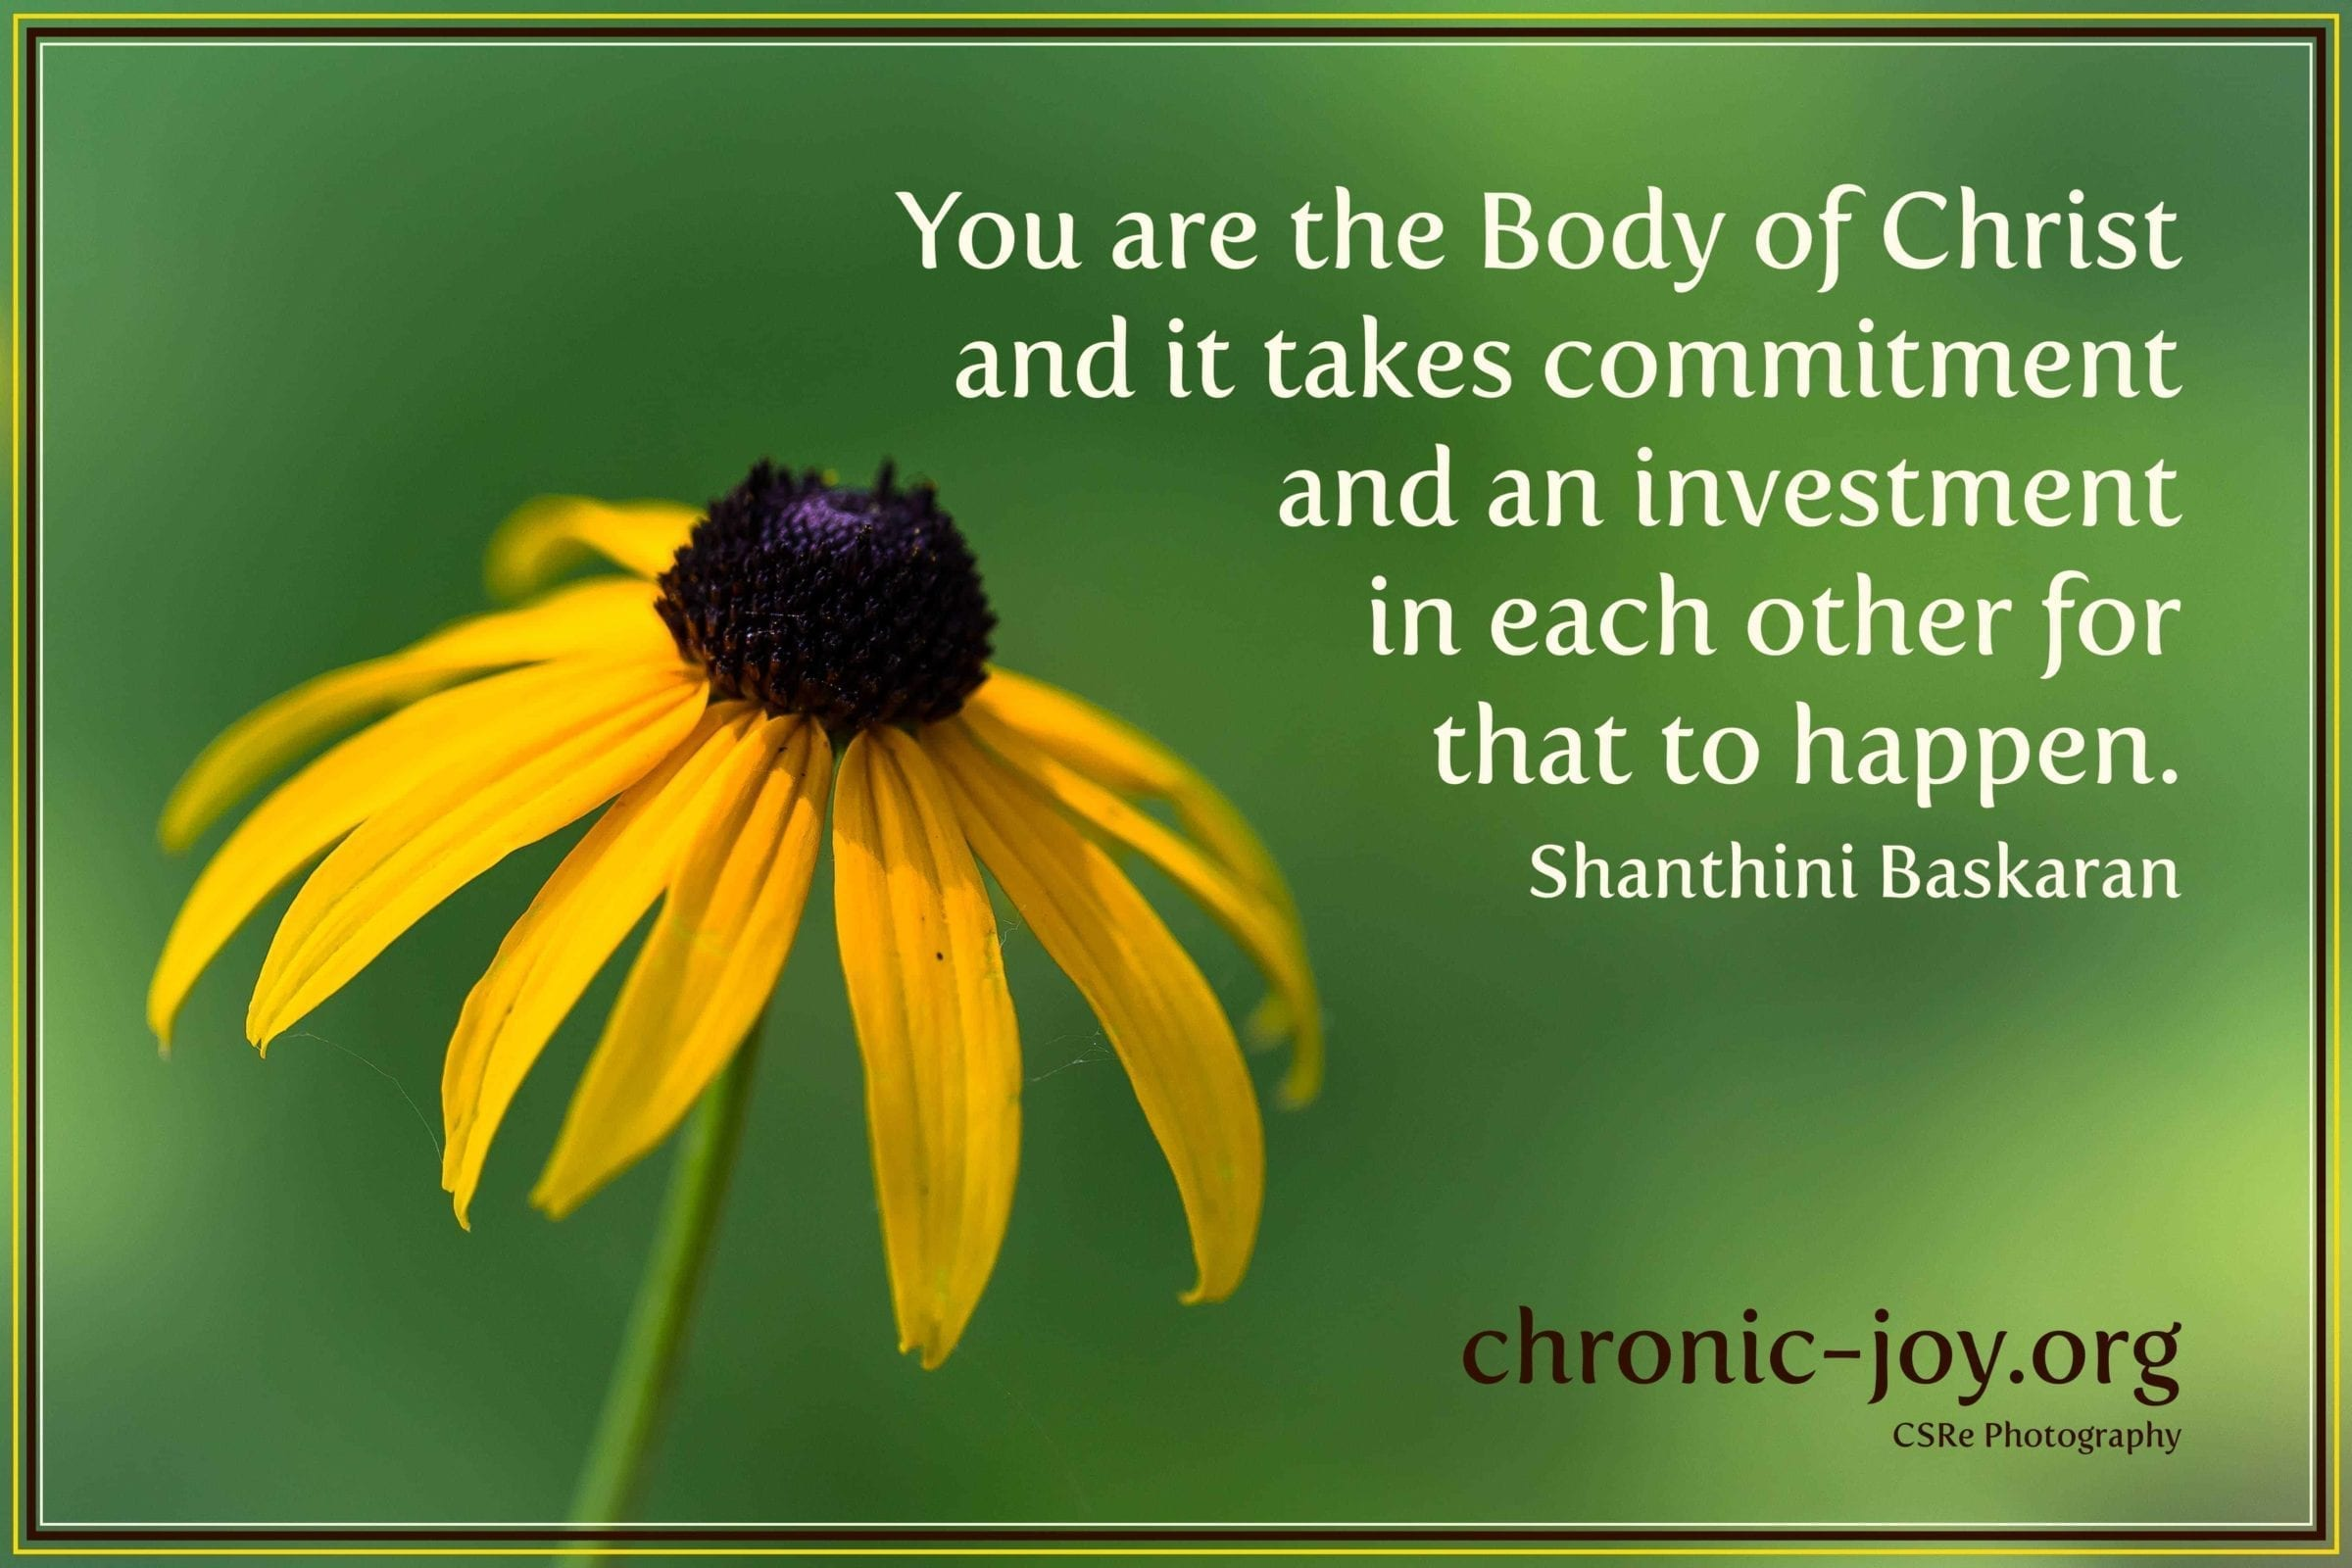 You are the Body of Christ - invest in each other.